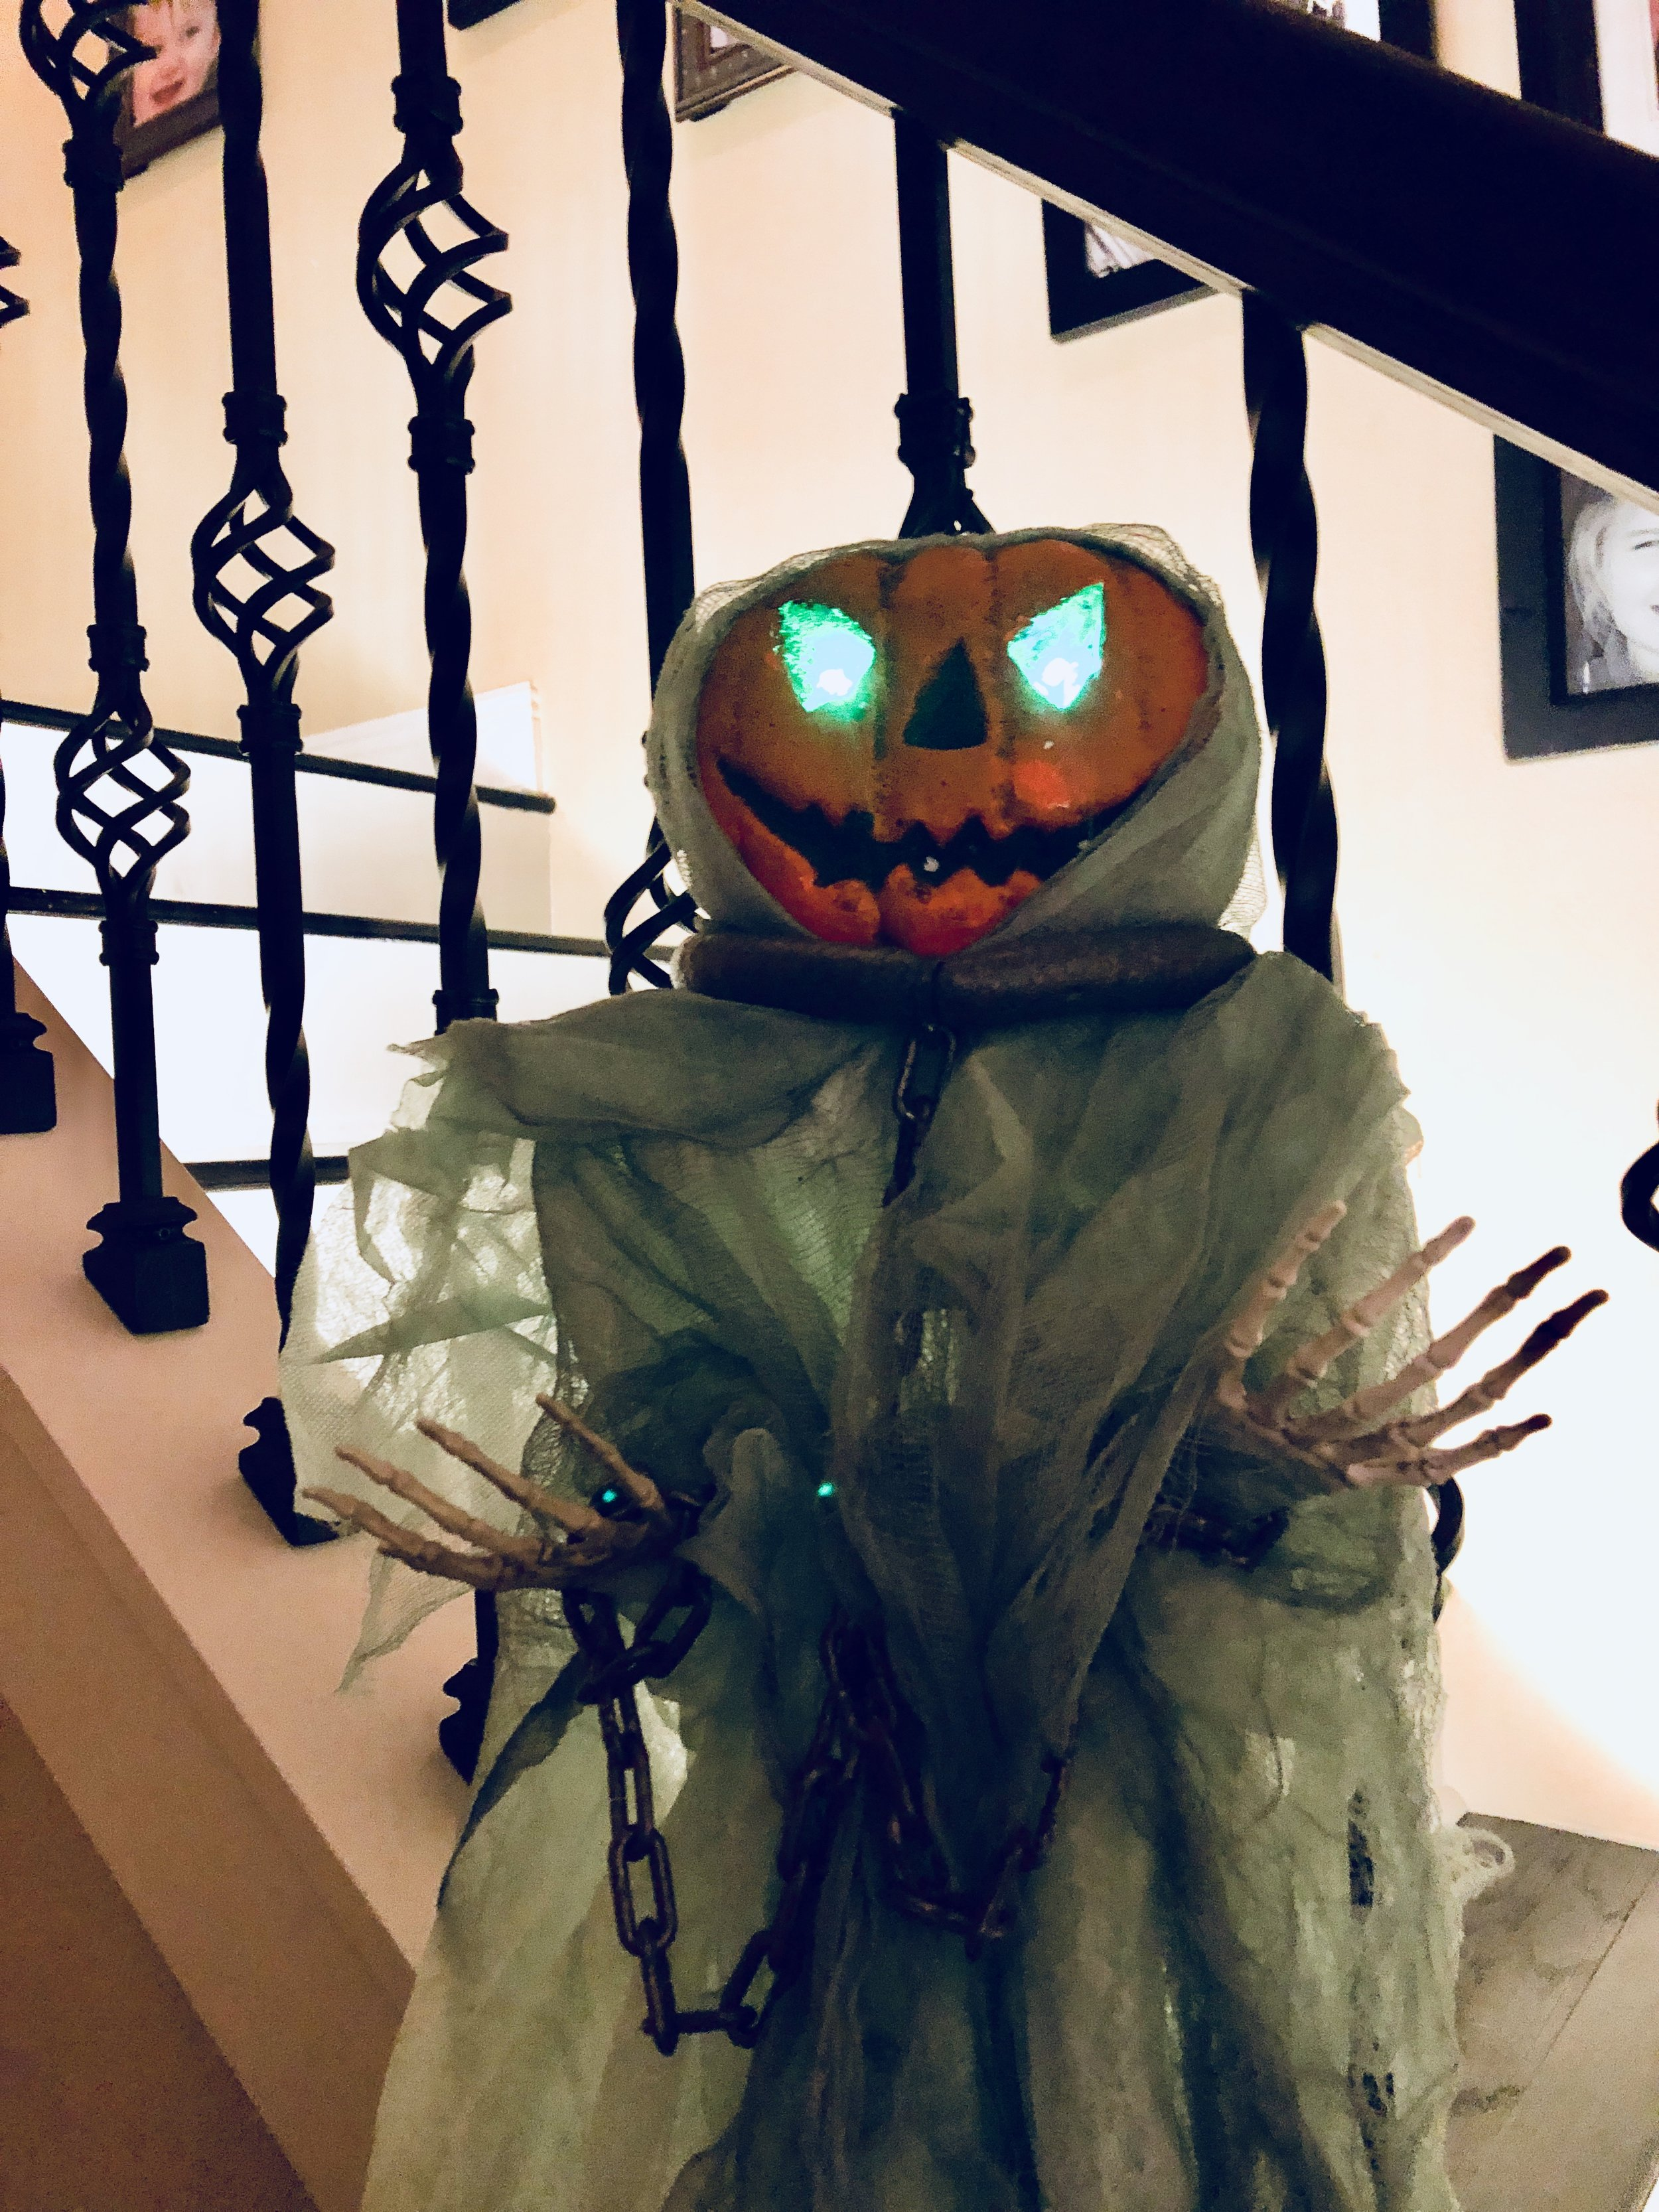 We've had this scarecrow for years - I love how creepy it is :)  One similar   here   from Target